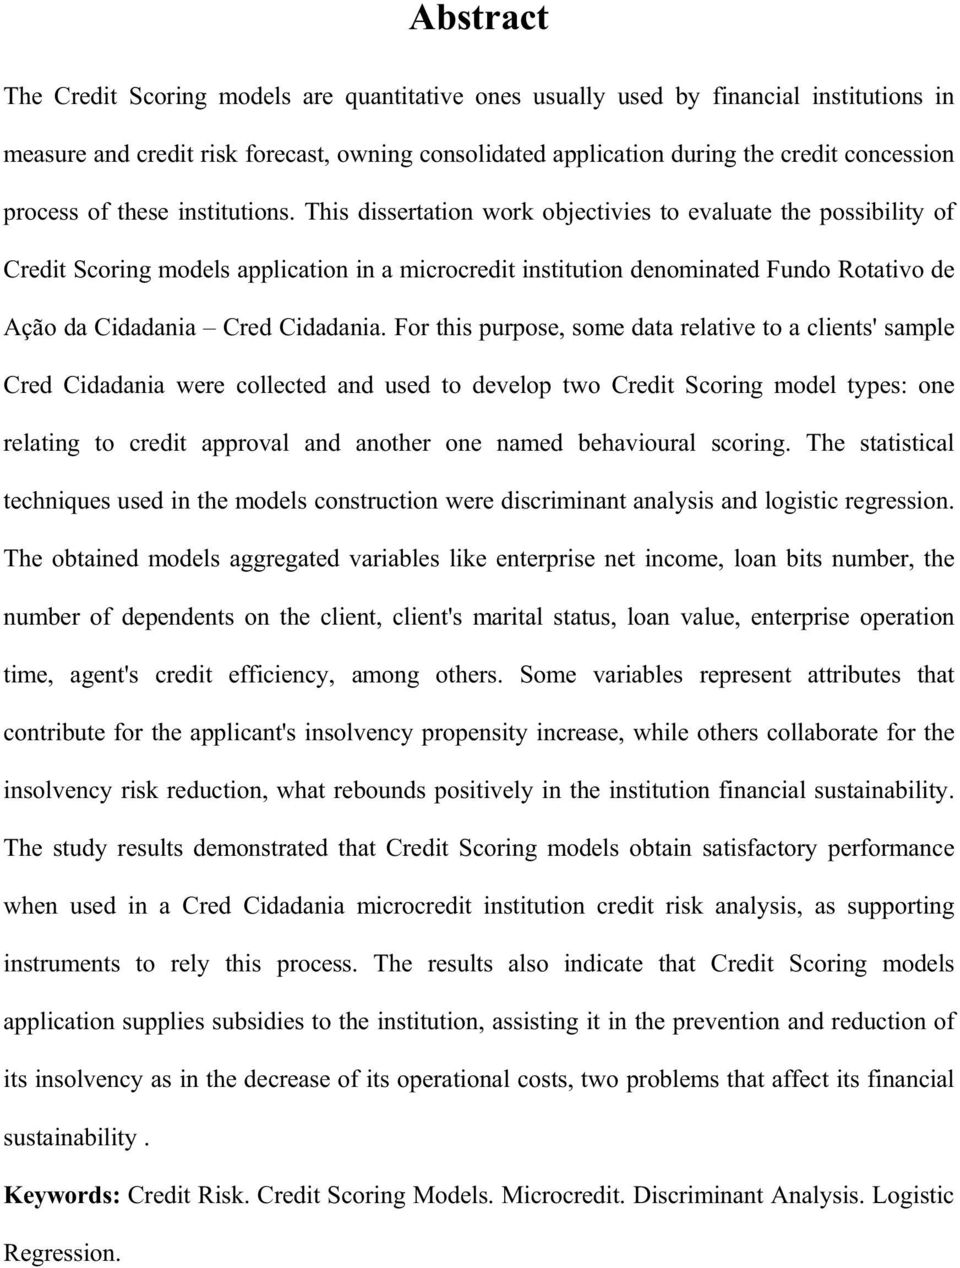 This dissertation work objectivies to evaluate the possibility of Credit Scoring models application in a microcredit institution denominated Fundo Rotativo de Ação da Cidadania Cred Cidadania.